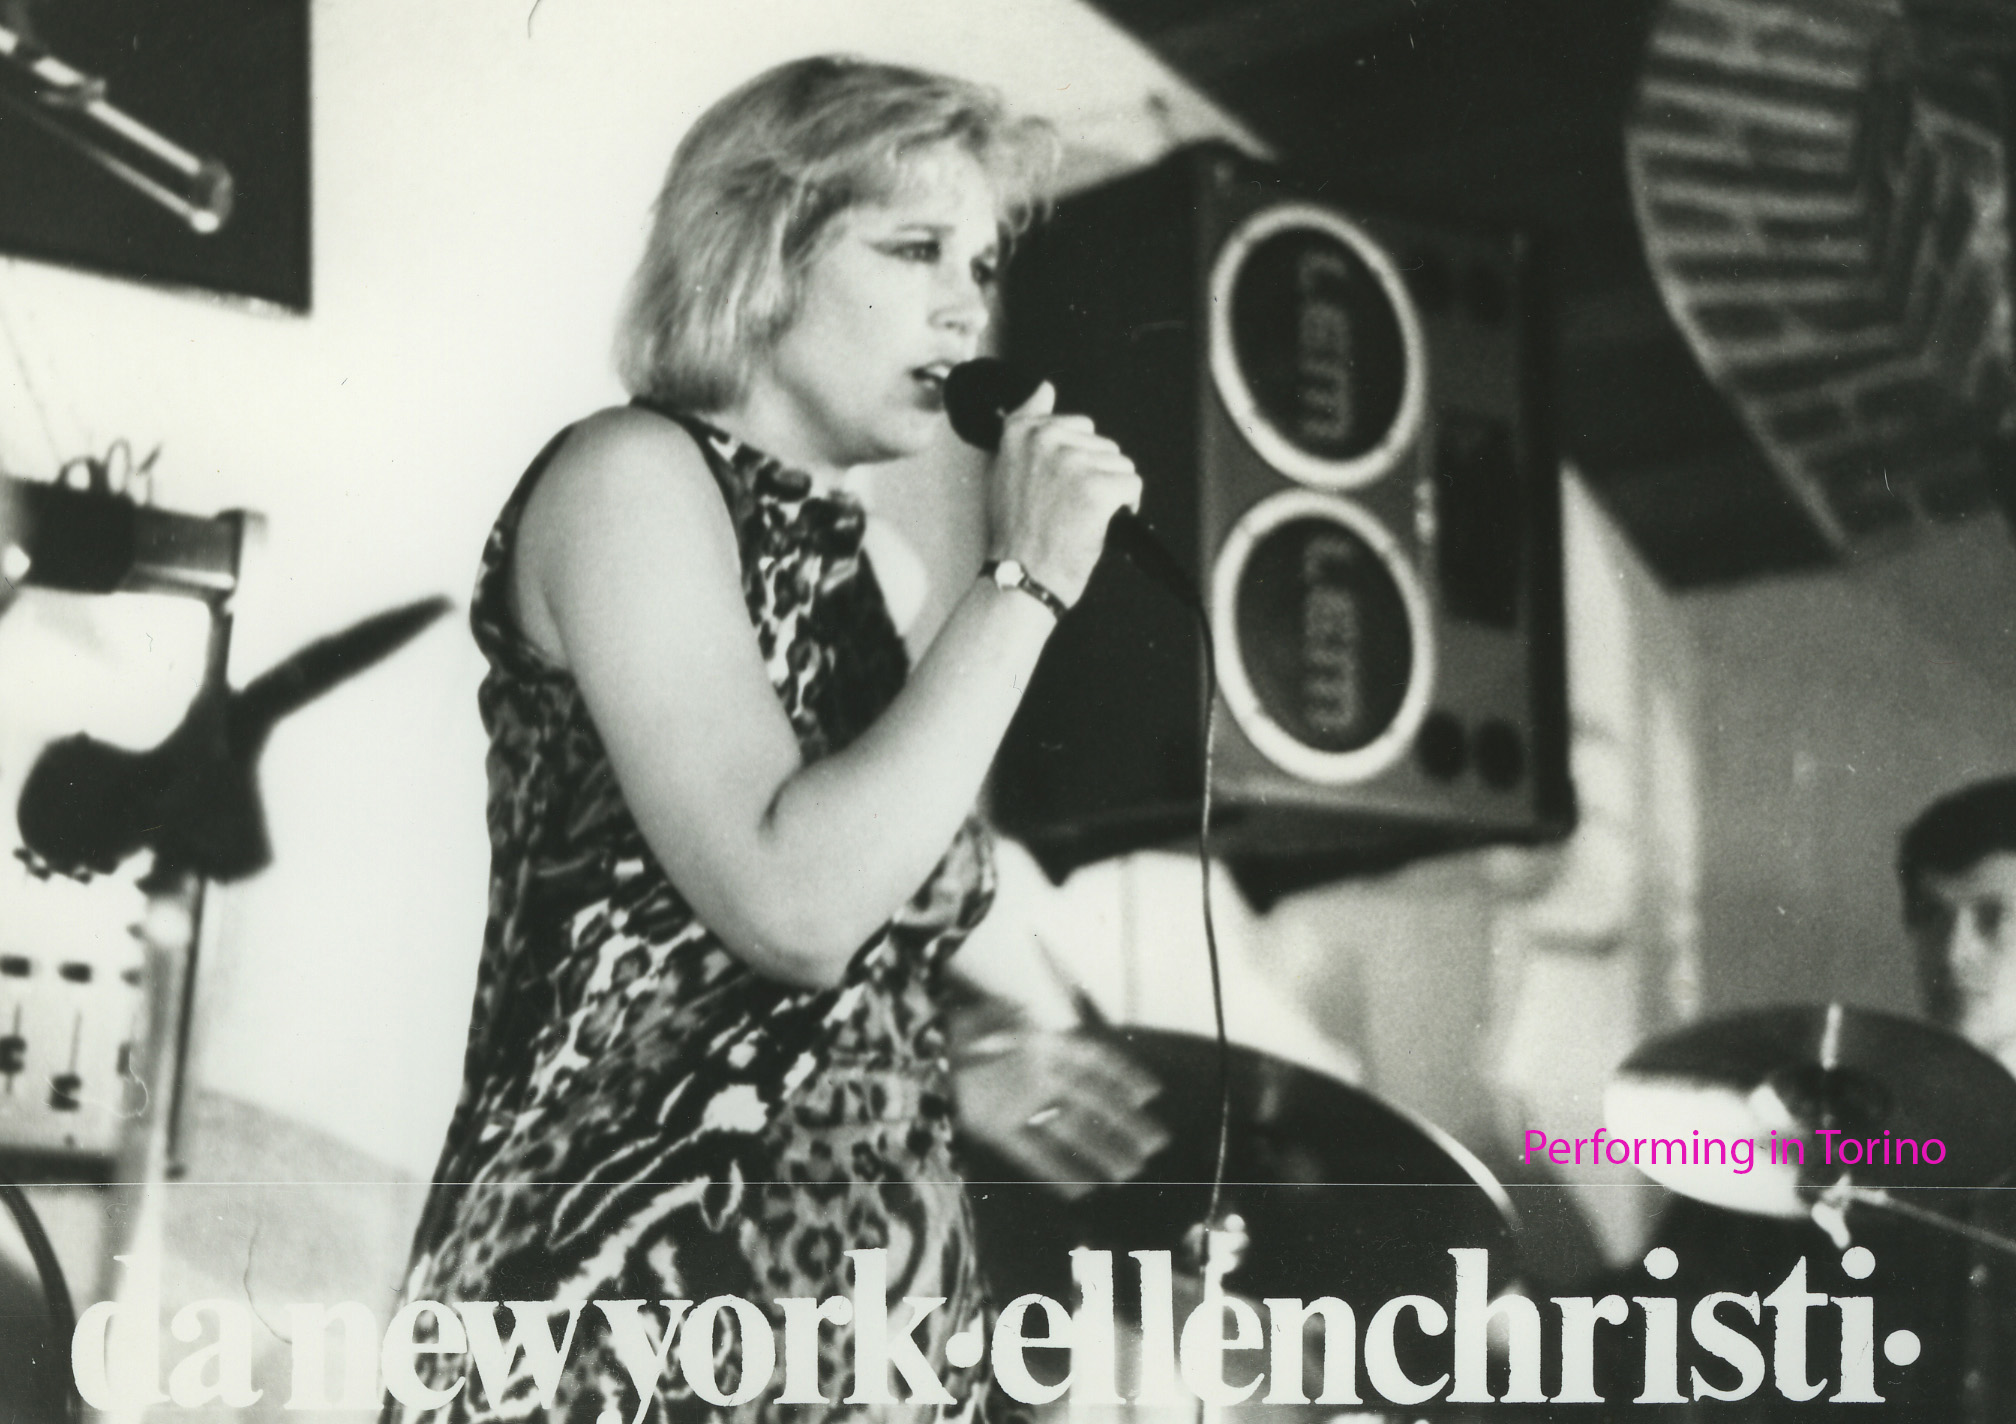 Ellen Christi in Torino1985 Named.jpg